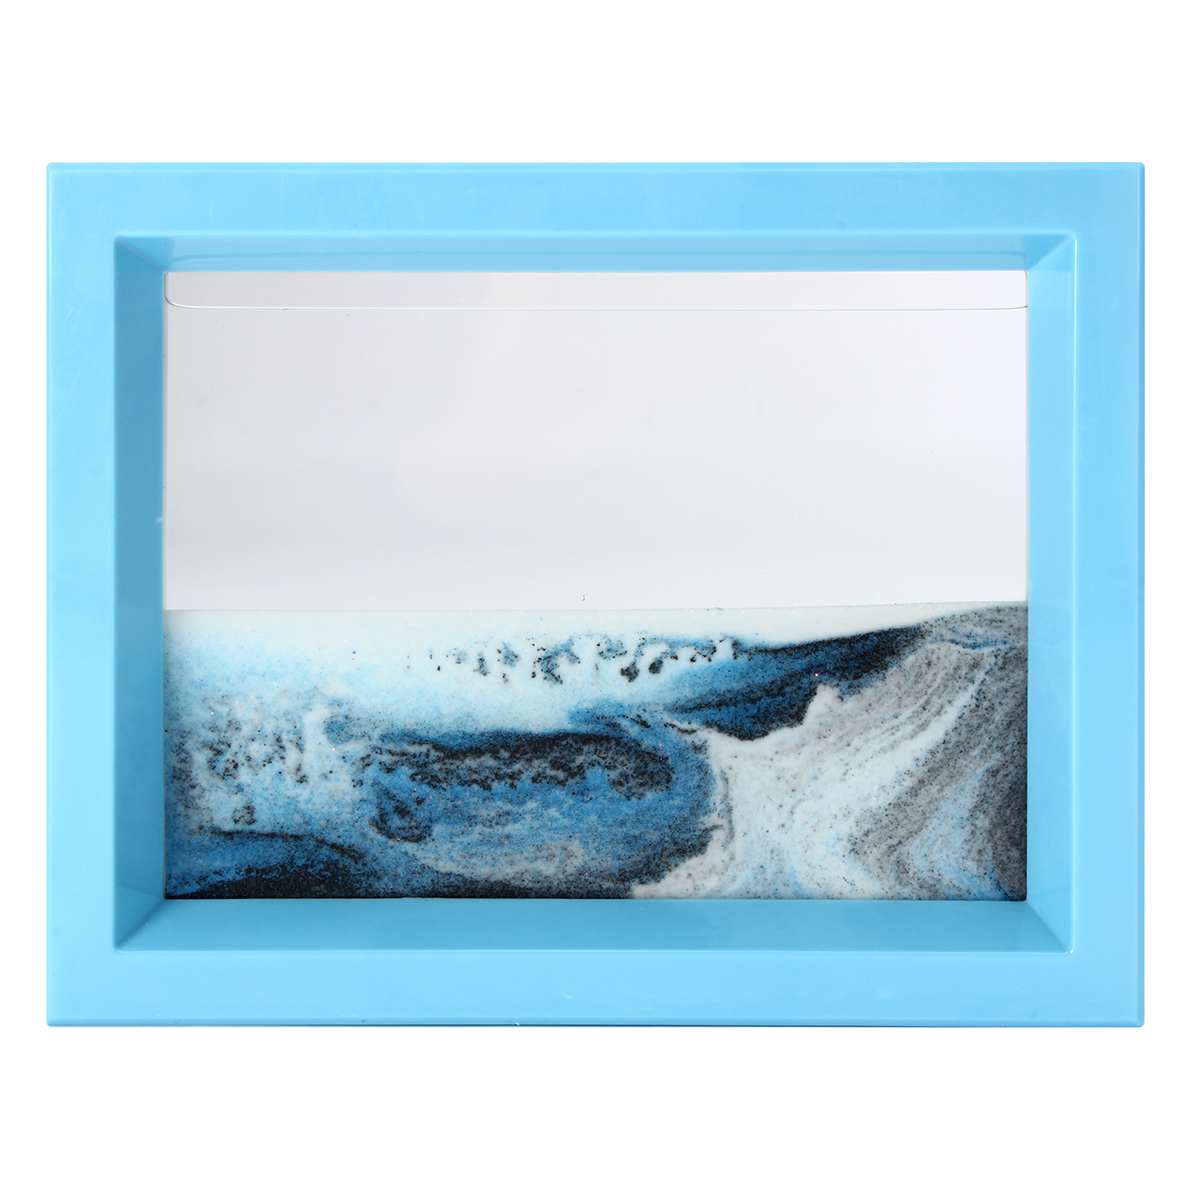 Abs moving liquid sand glass art picture photo frame home for Home interiors and gifts framed art